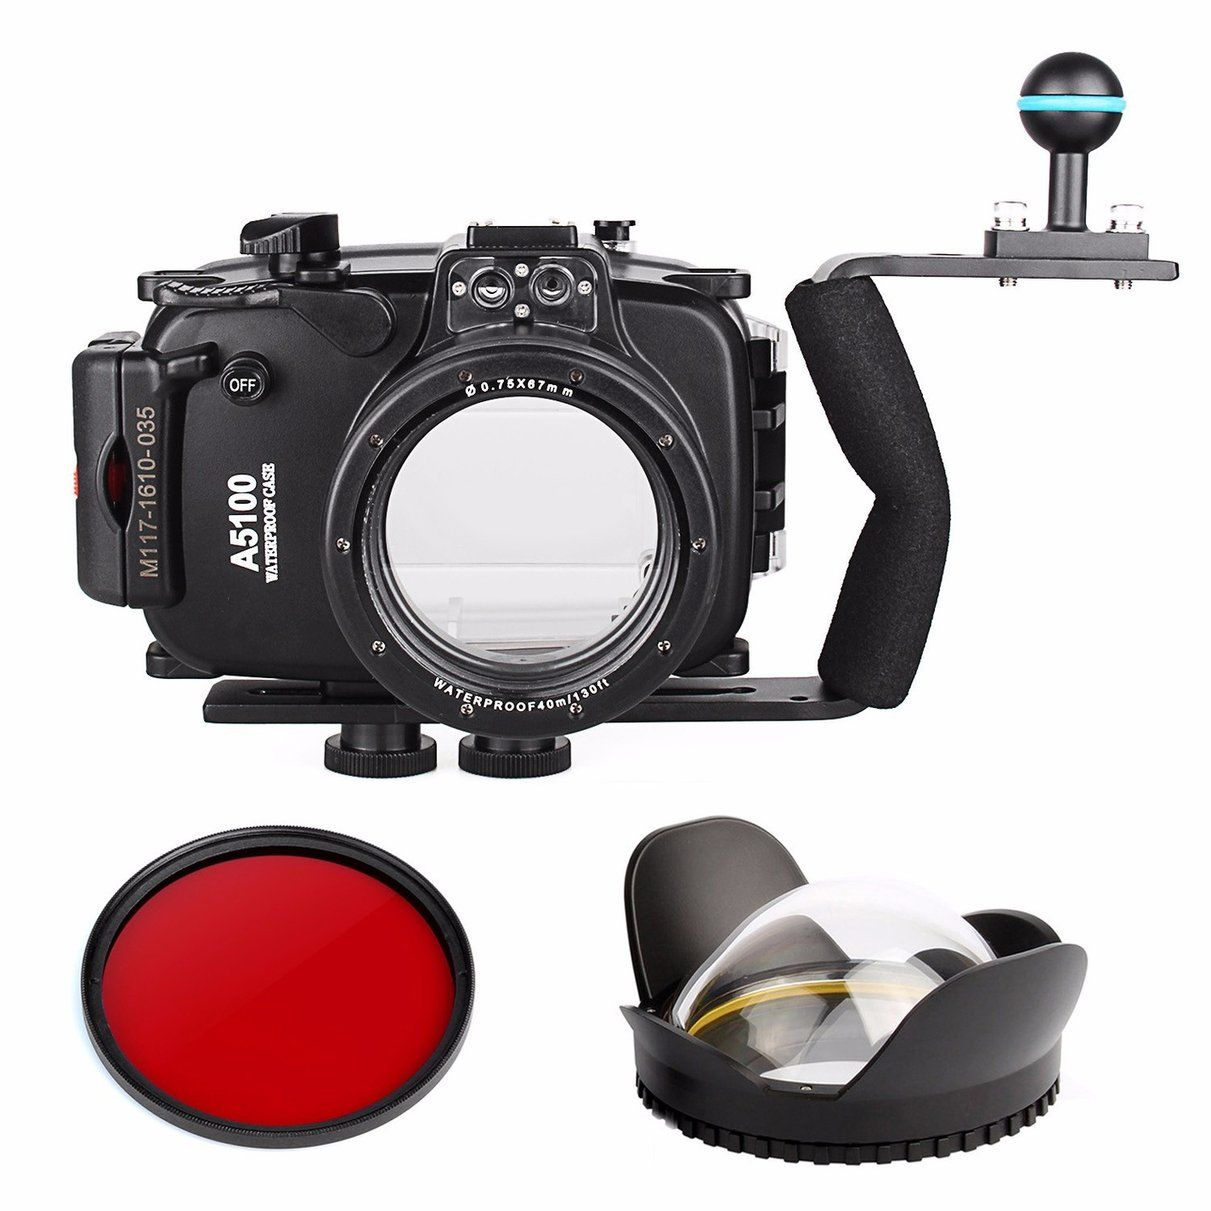 40m 130ft Waterproof Underwater Camera Housing Case Bag for Sony A5100 16-50mm Lens + Diving handle + Fisheye Lens + Red Filter